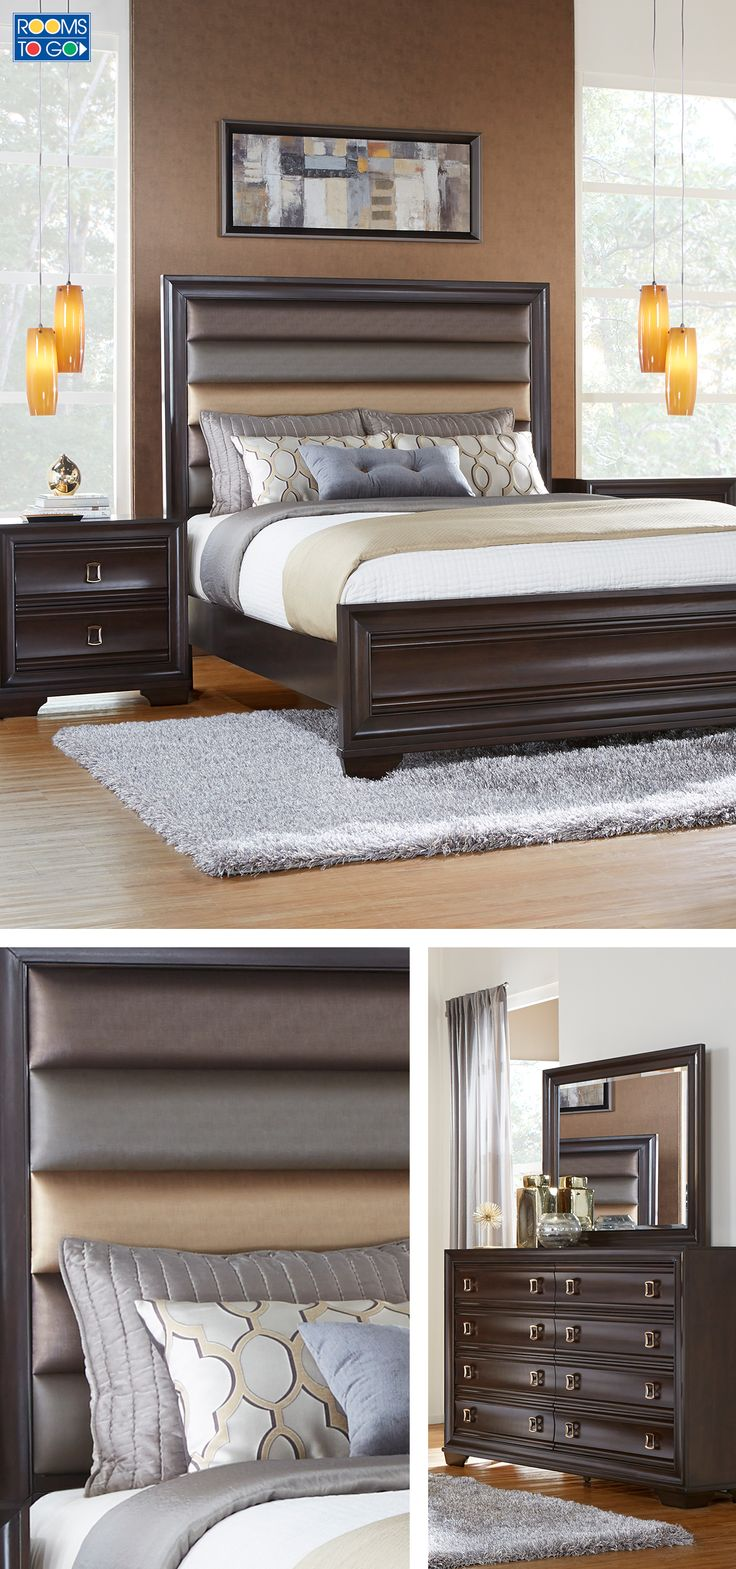 Cortinella Cherry 3 Pc Queen Sleigh Bed: Dreamy Bedrooms: A Collection Of Ideas To Try About Home